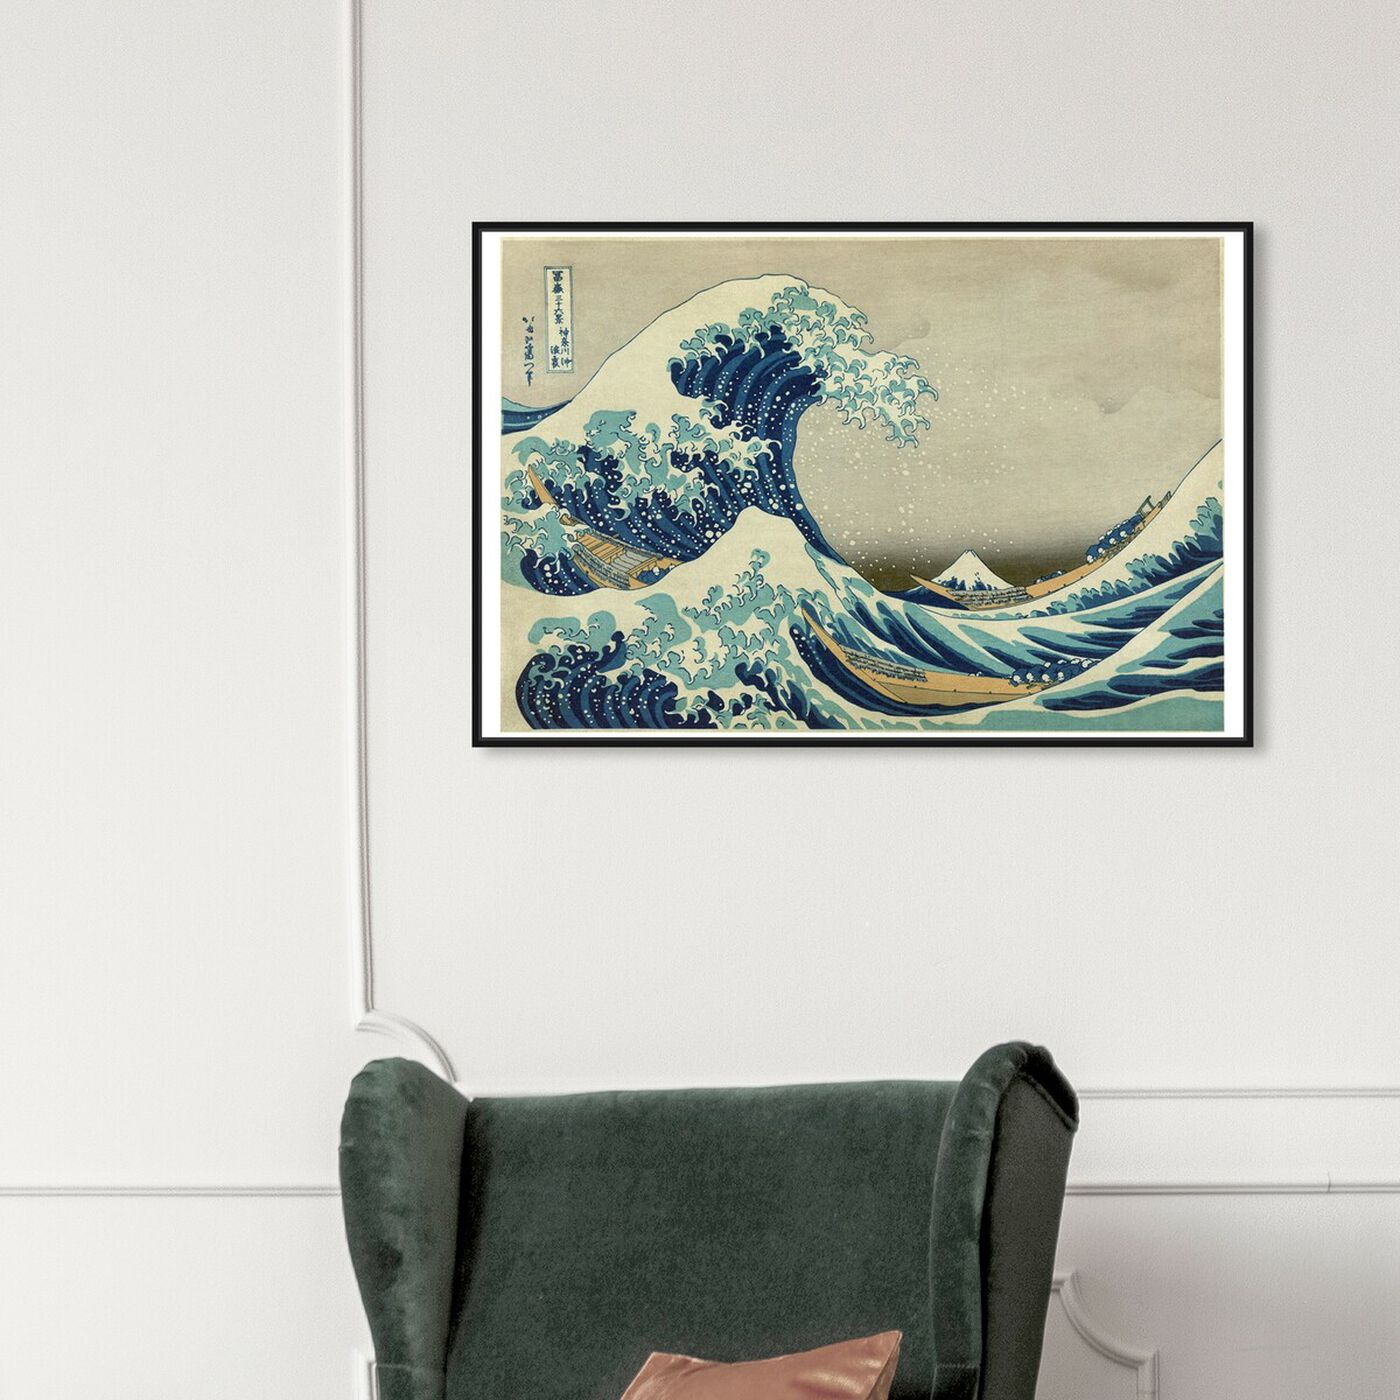 Hanging view of The Great Wave of Kanagawa featuring world and countries and asian cultures art.